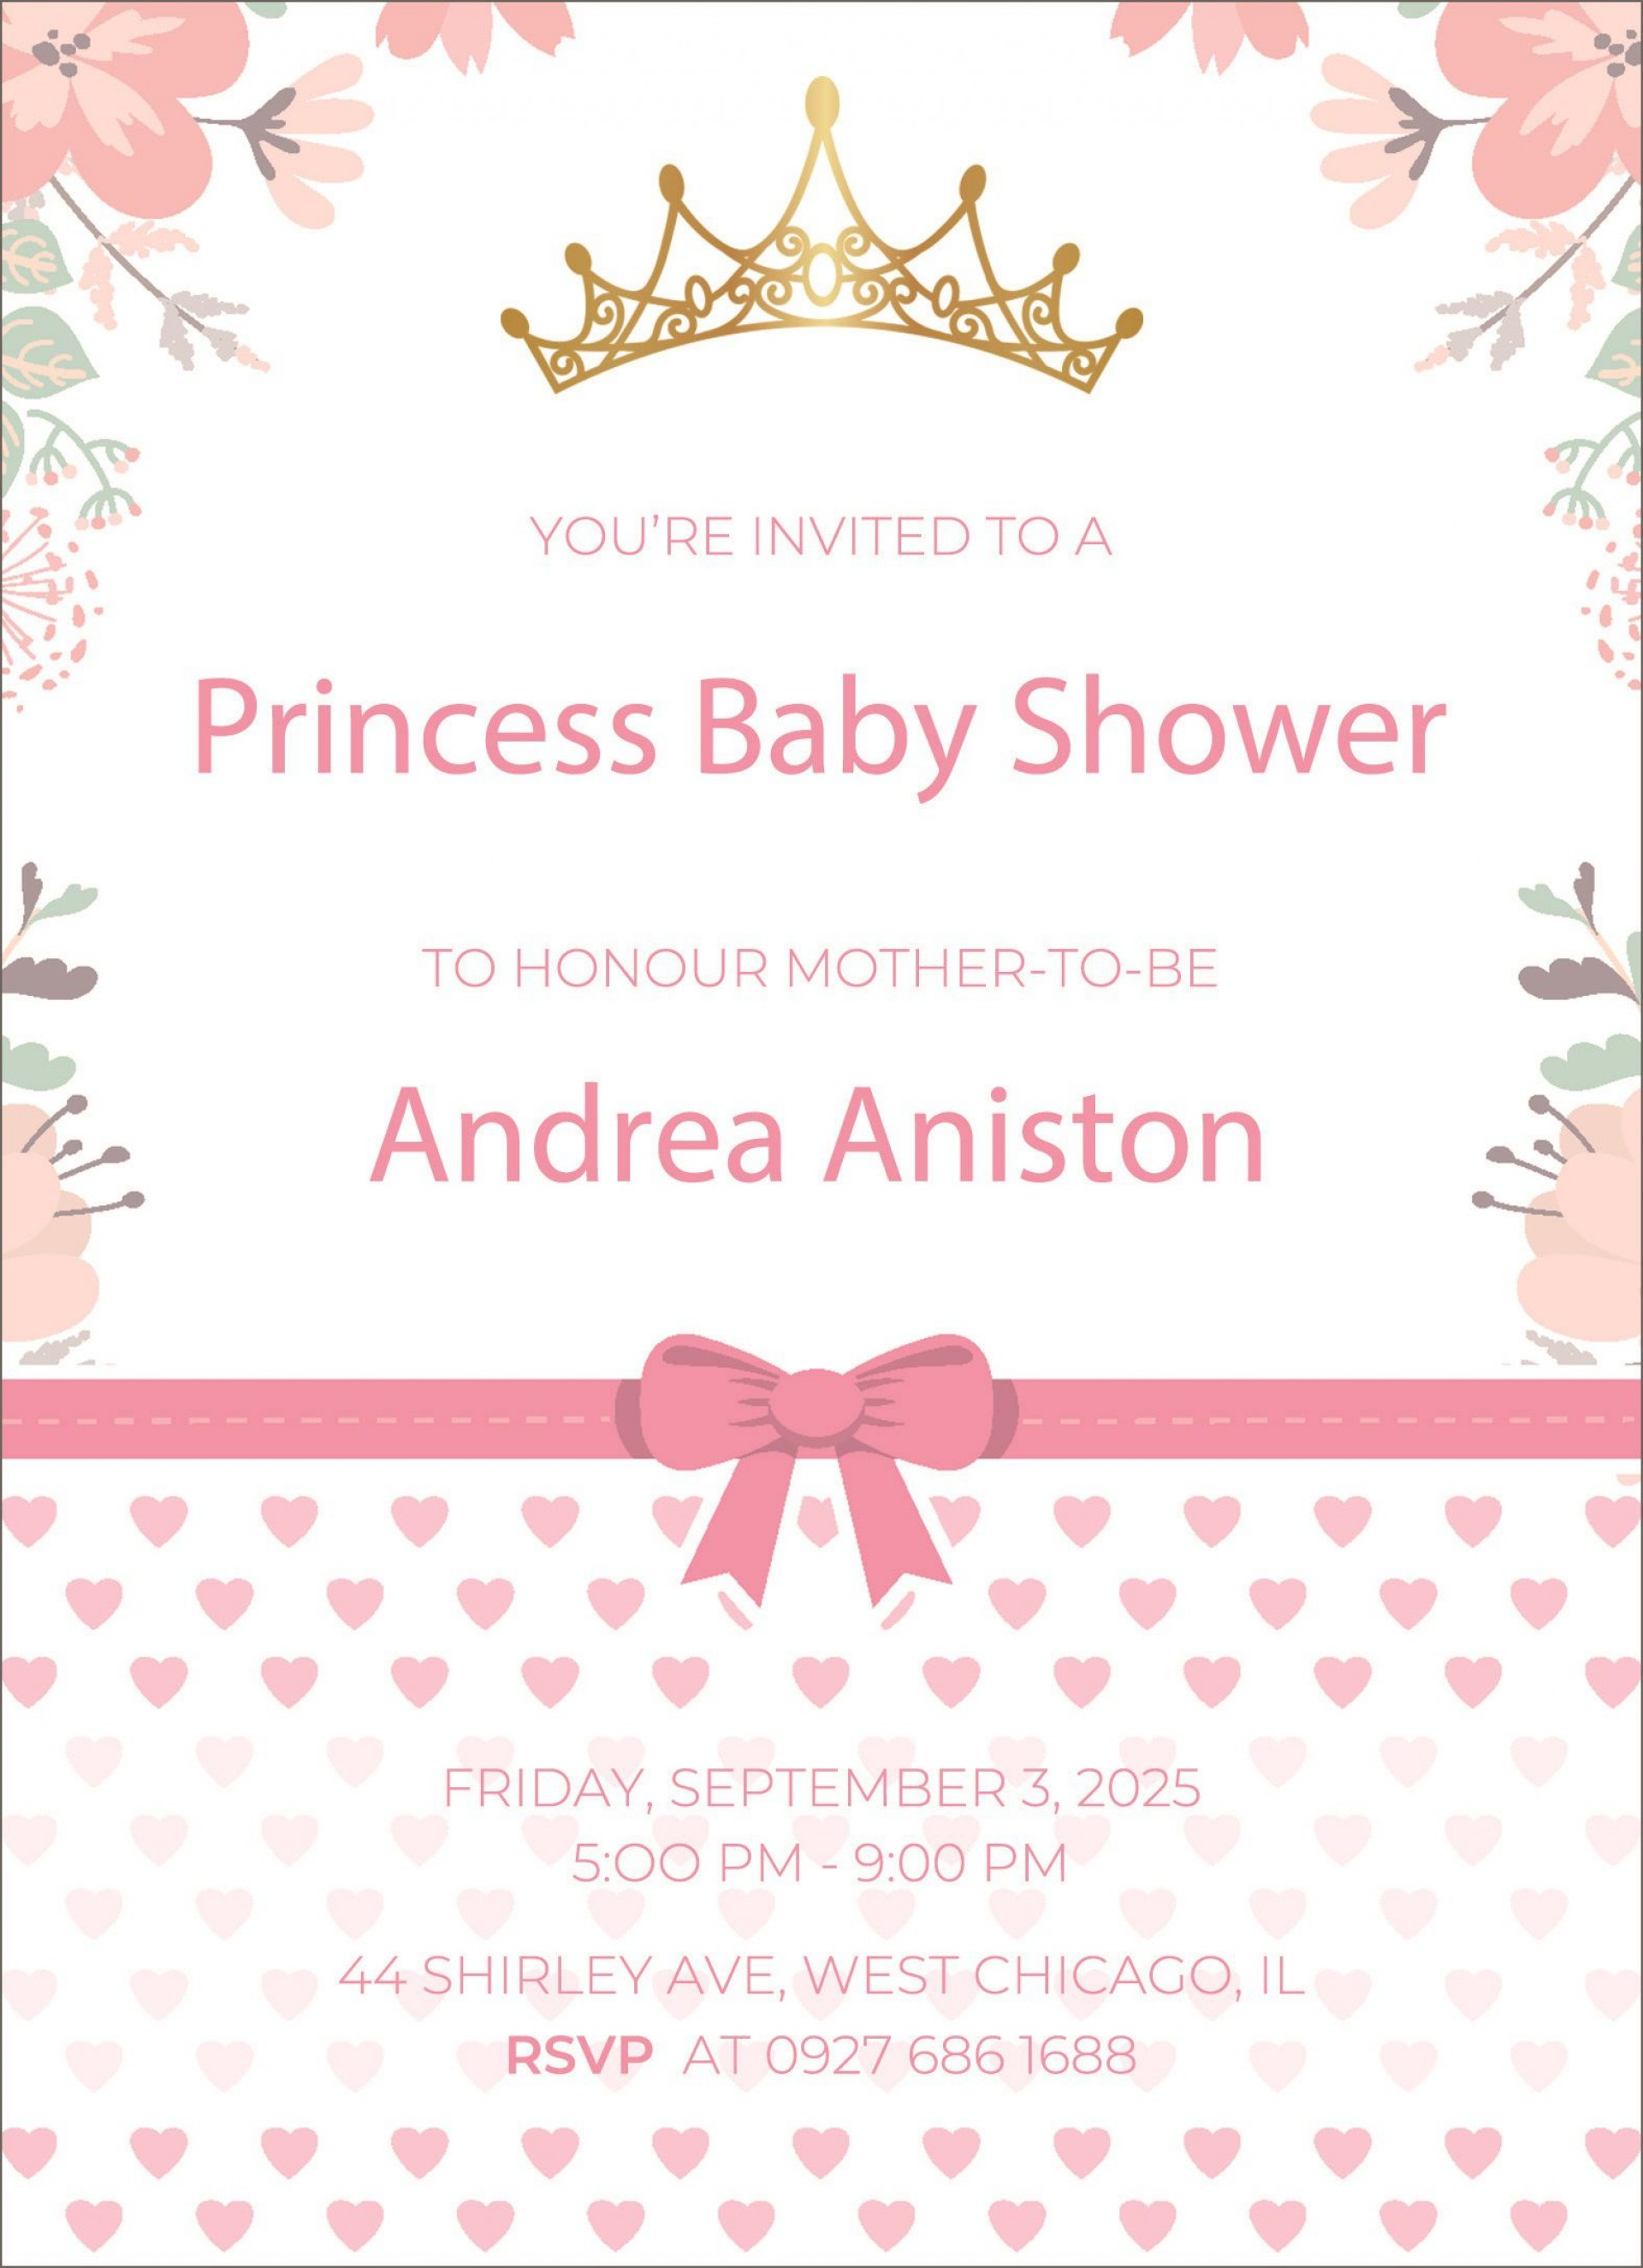 005 Fearsome Baby Shower Announcement Template High Resolution  Templates Invitation India Indian Free With Photo1920